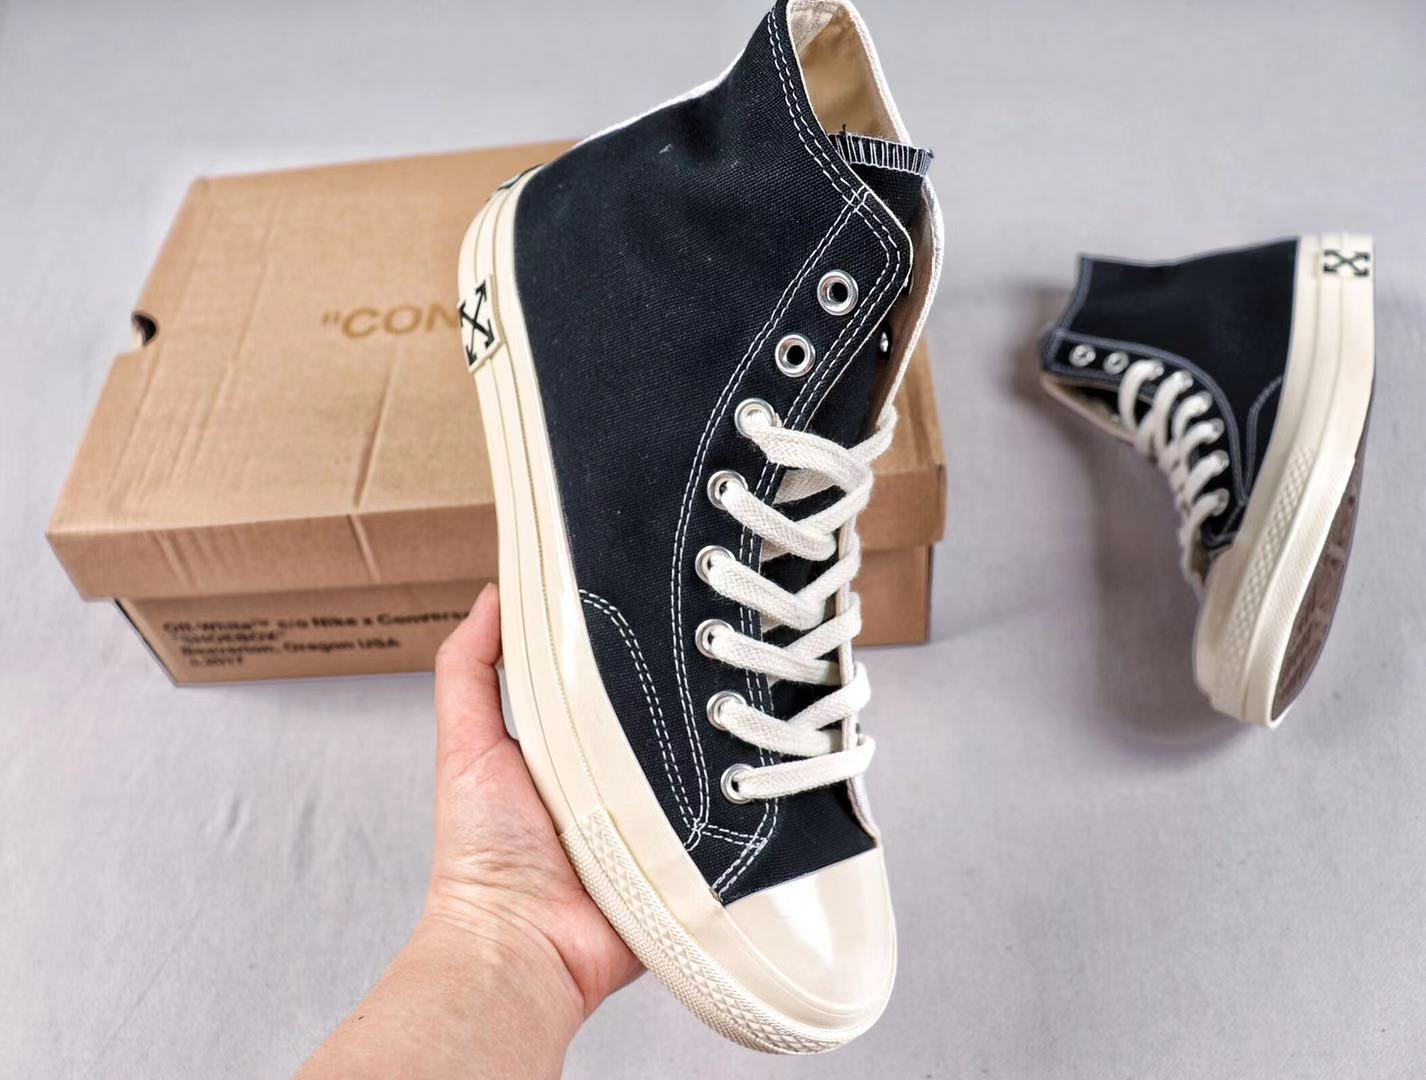 Converse x Off White 163862C White/Black New High Shoes Free Shipping